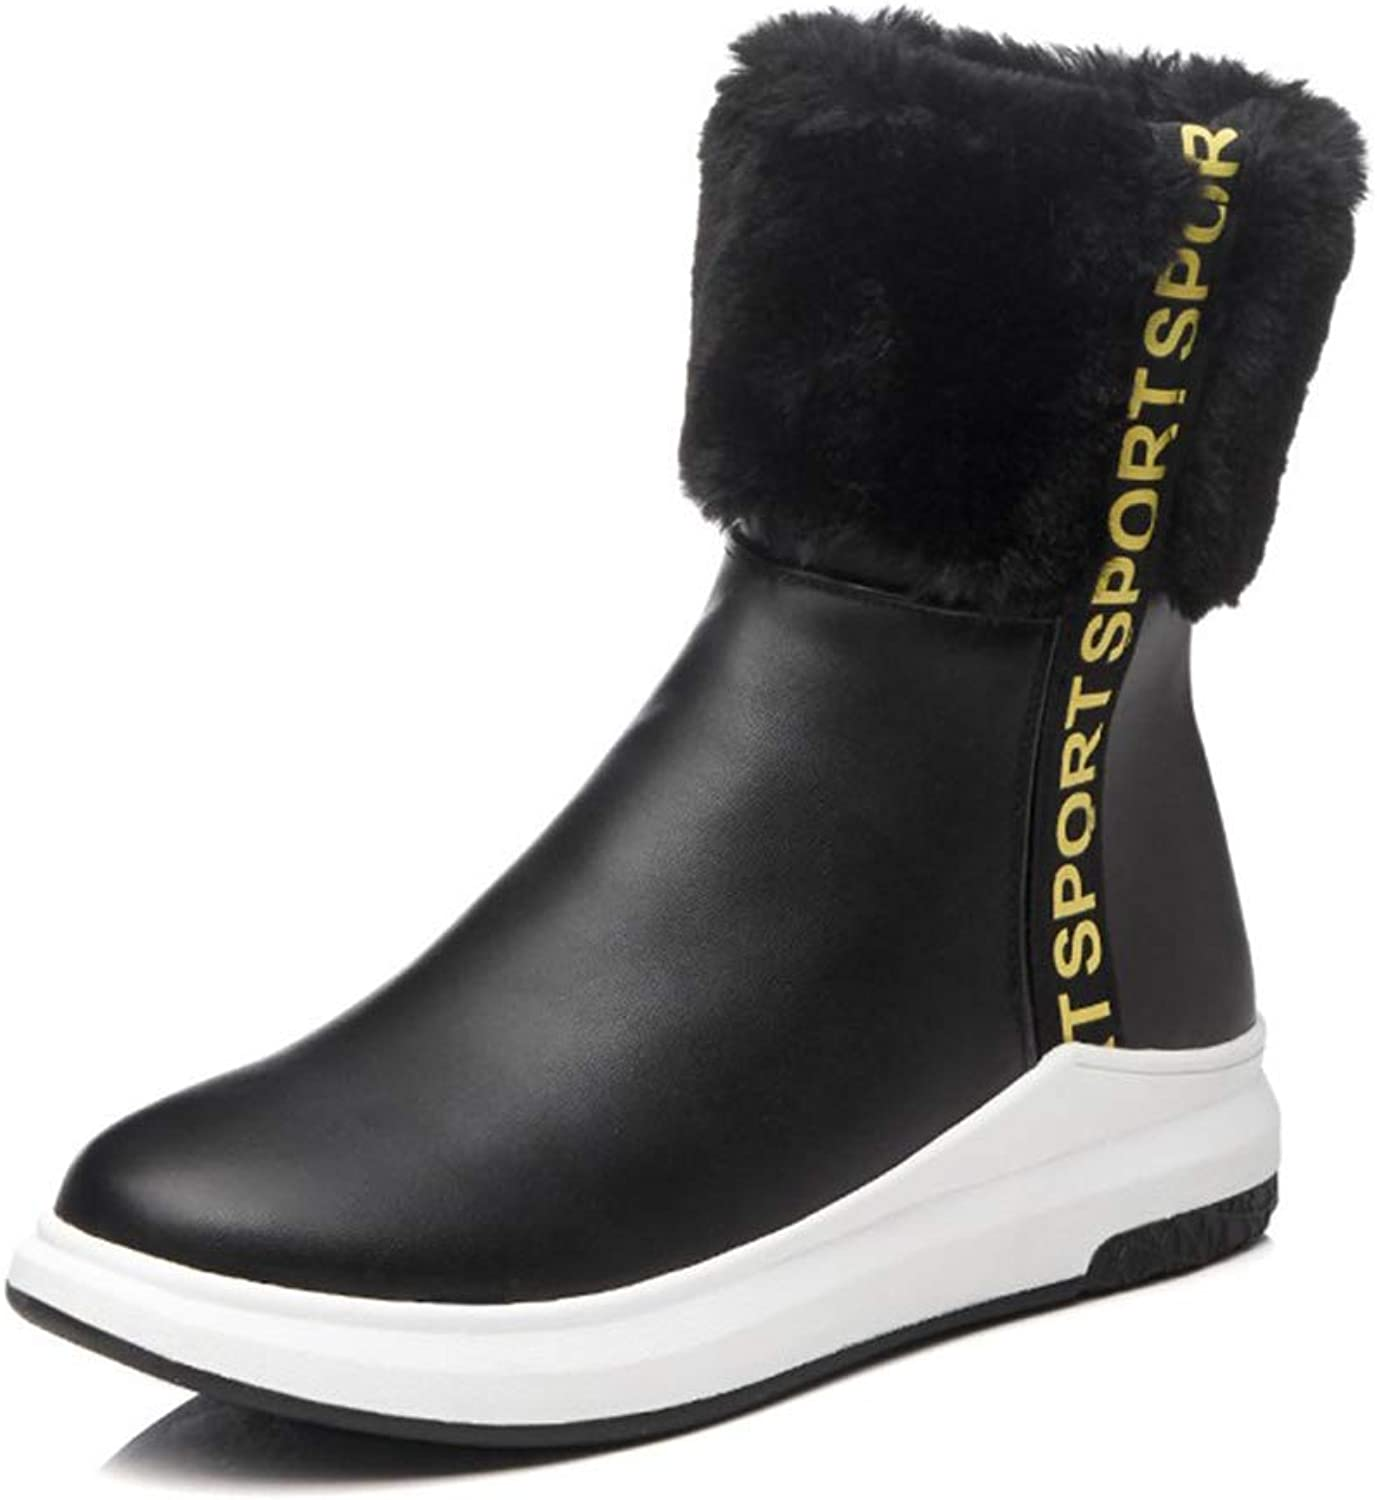 Women's Booties, Wedge Comfortable Keep Warm Fashion Boots Ladies Casual Round Head Fall Winter Ankle Boots (color   A, Size   40)